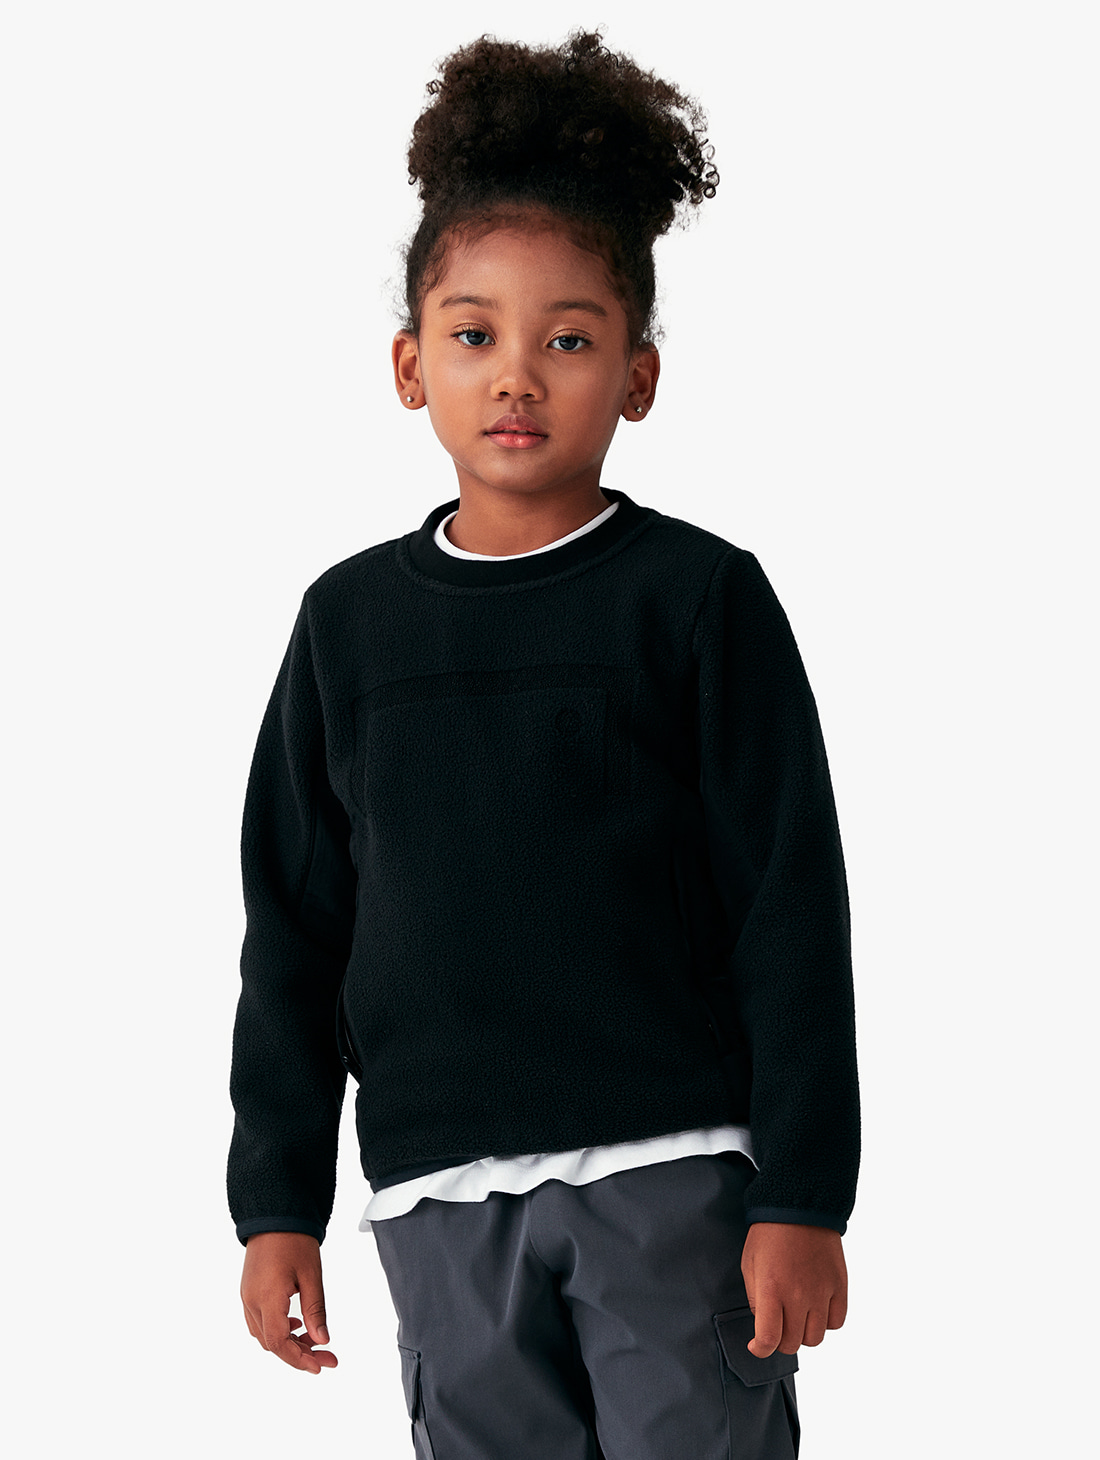 GOALSTUDIO (KIDS) NYLON METAL MIXED FLEECE SWEATSHIRT (2 Colors)